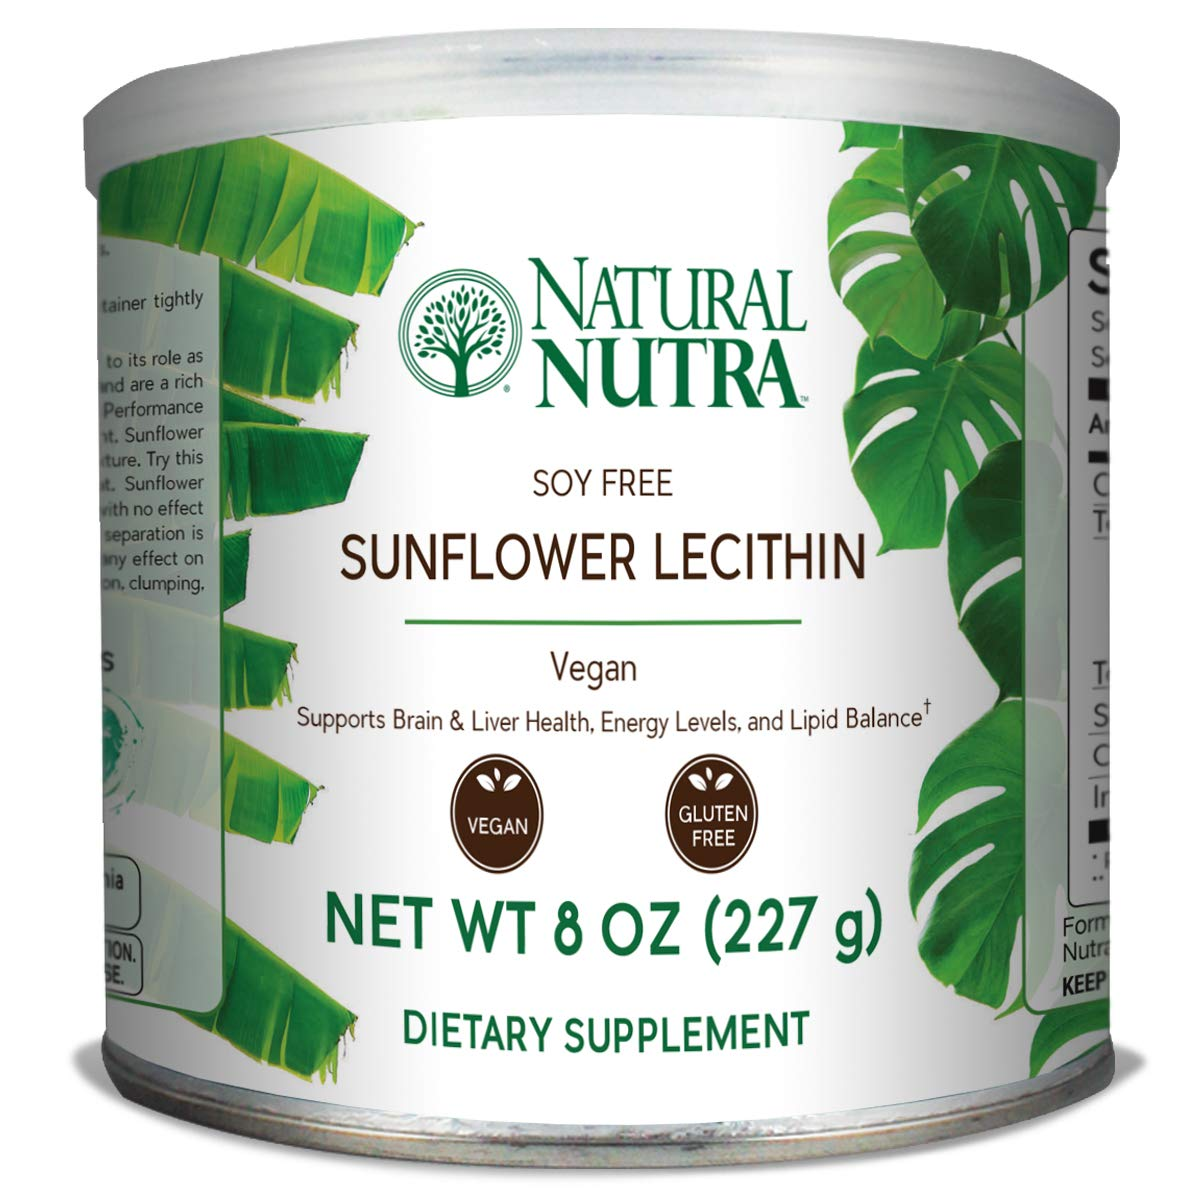 Natural Nutra Sunflower Lecithin Powder, Non GMO, Soy Free with Inositol, Omega 3-6 and Choline, 8 oz Vegan Supplement by Natural Nutra